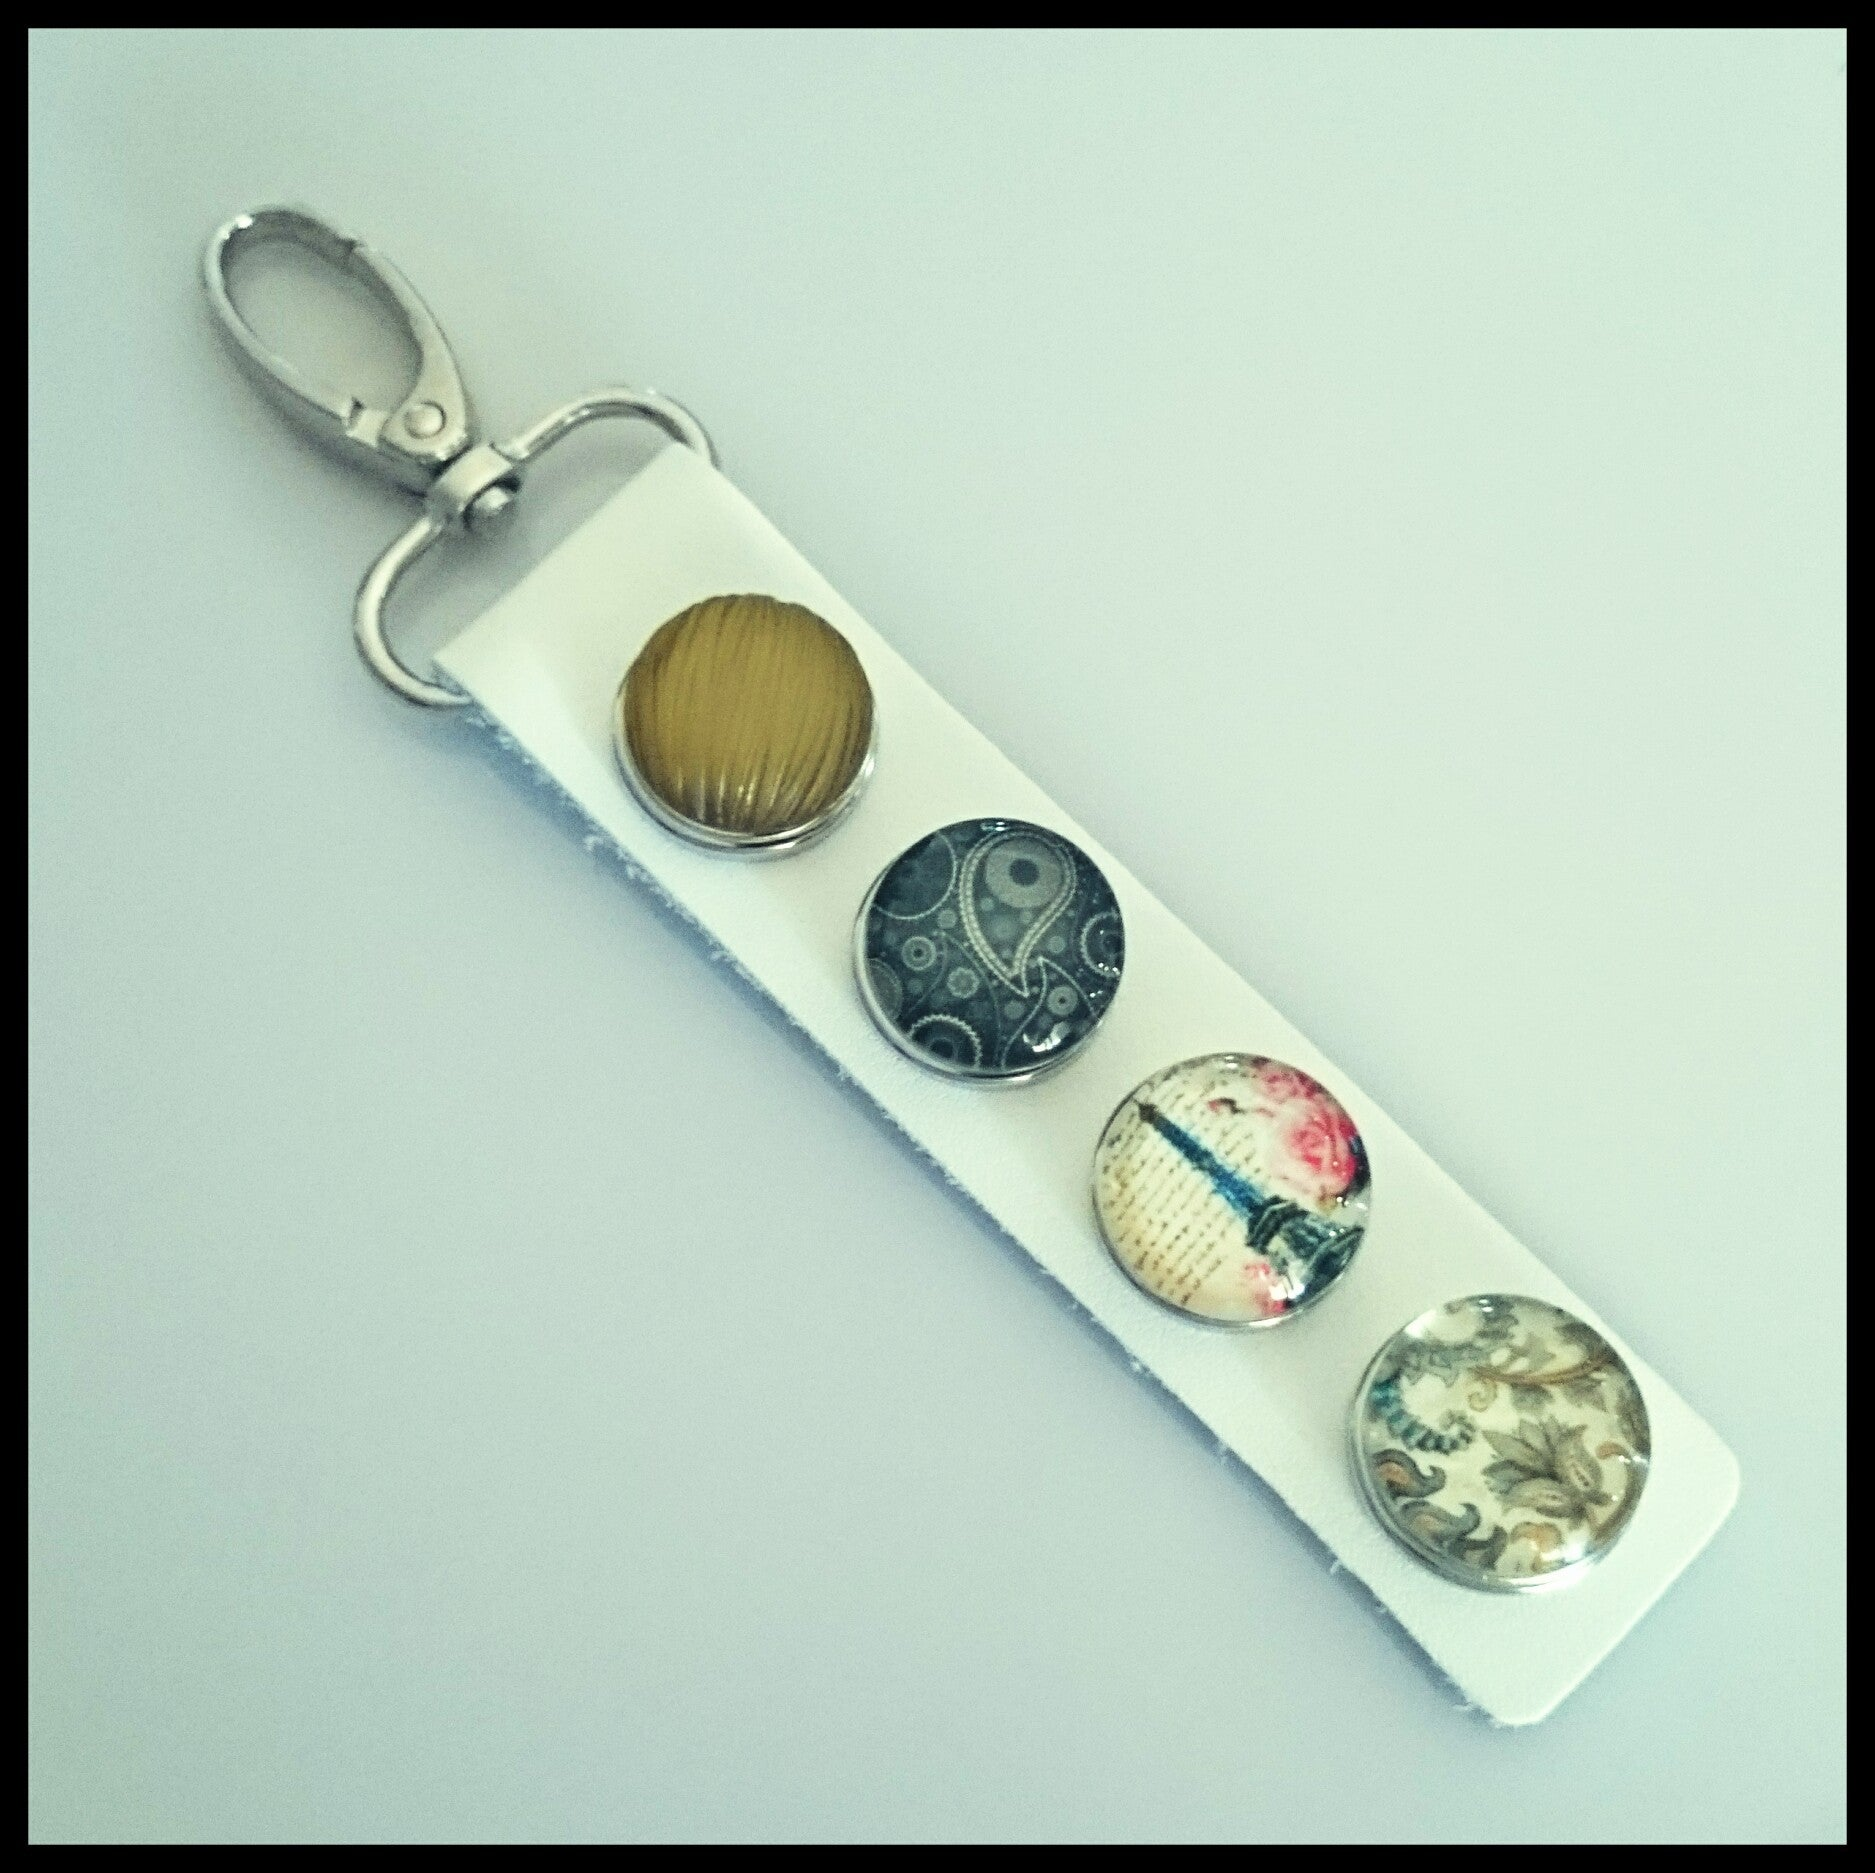 Leather 4 Snap Key Ring - White - Find Something Special